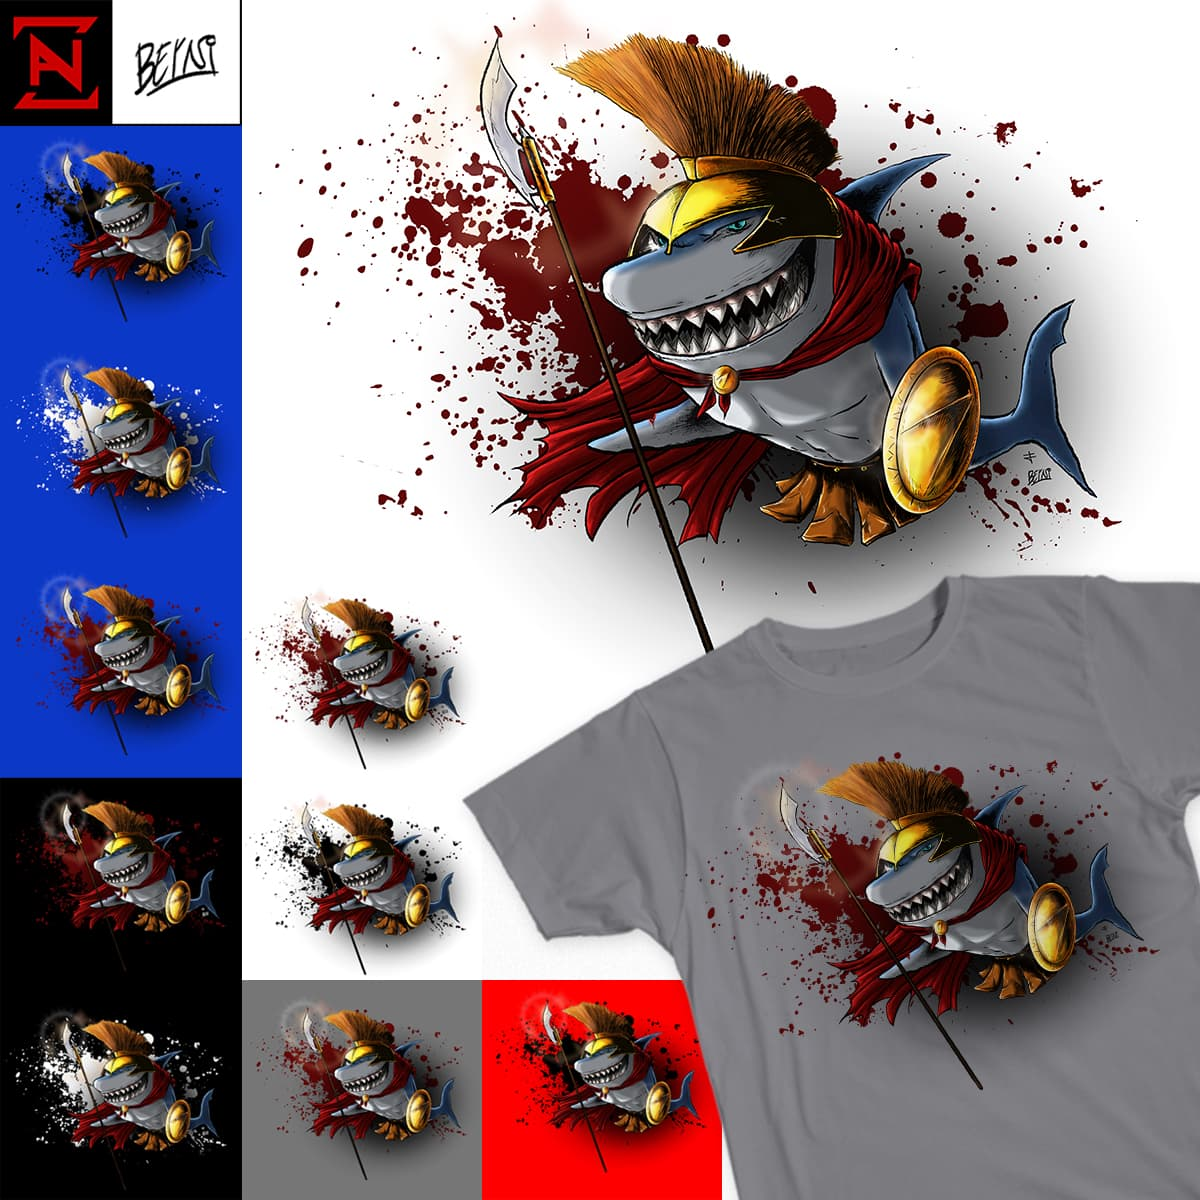 Spartan Shark by Zanza Harara and BerniOnLine on Threadless